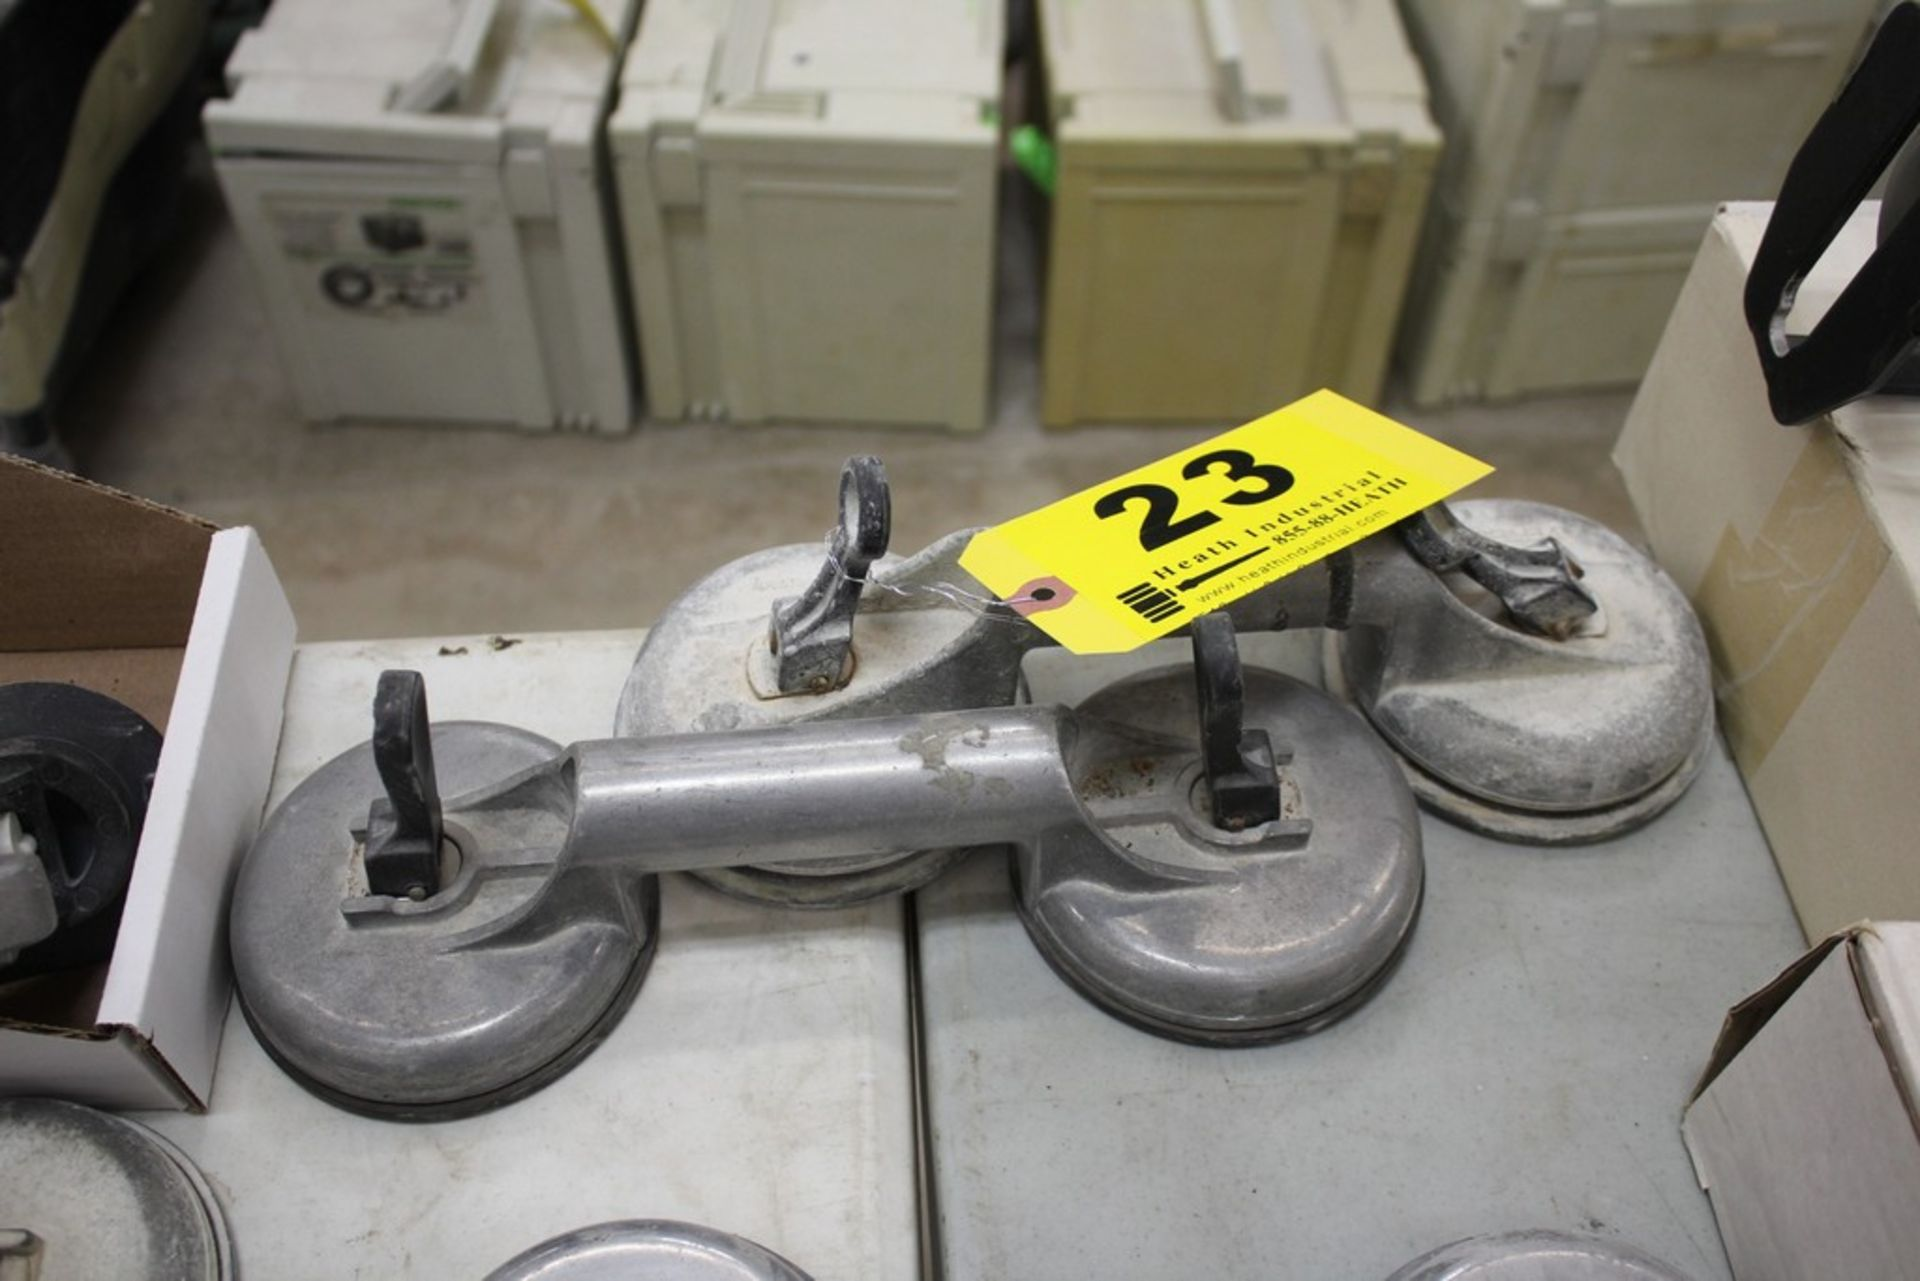 Lot 23 - PAIR OF VERIBOR SUCTION CUP MATERIAL LIFTERS